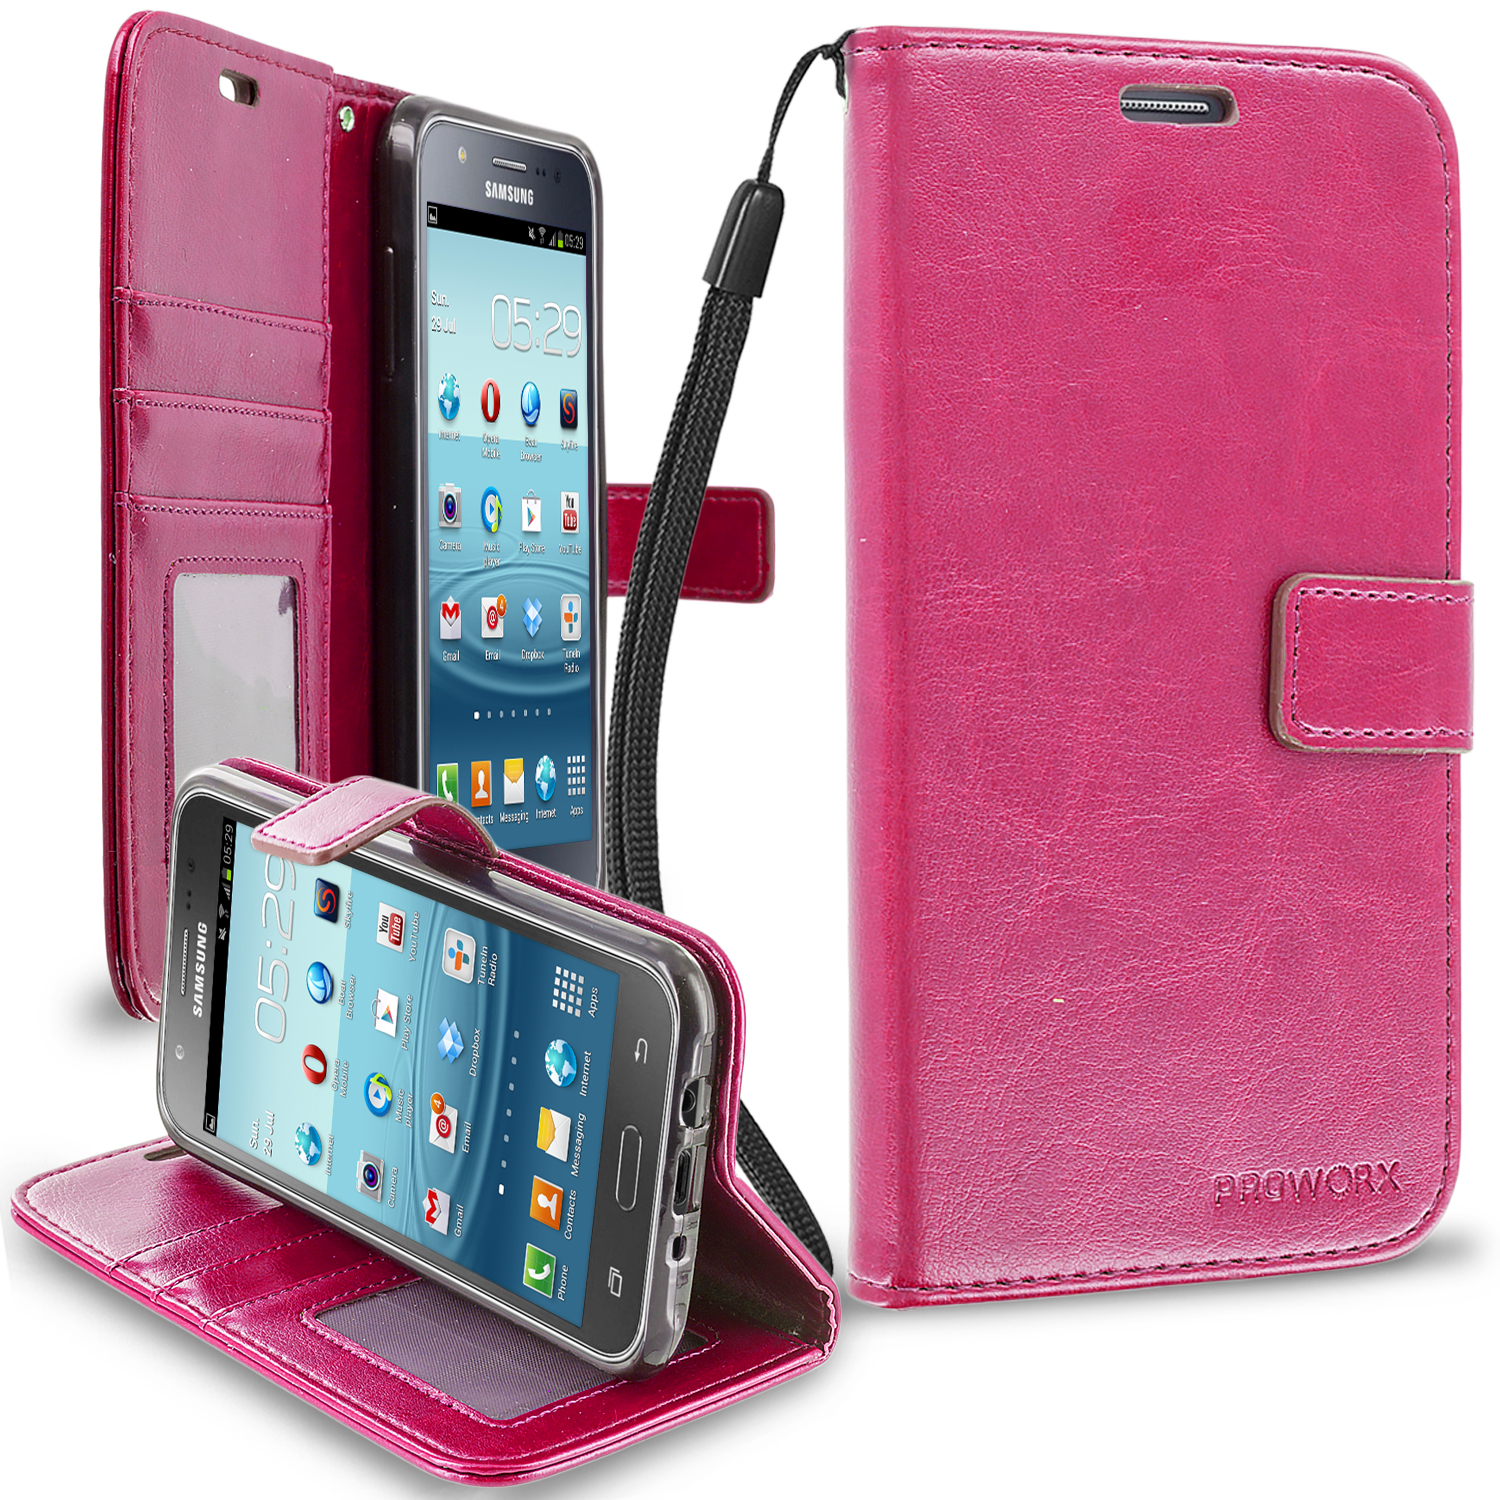 Samsung Galaxy J7 Hot Pink ProWorx Wallet Case Luxury PU Leather Case Cover With Card Slots & Stand